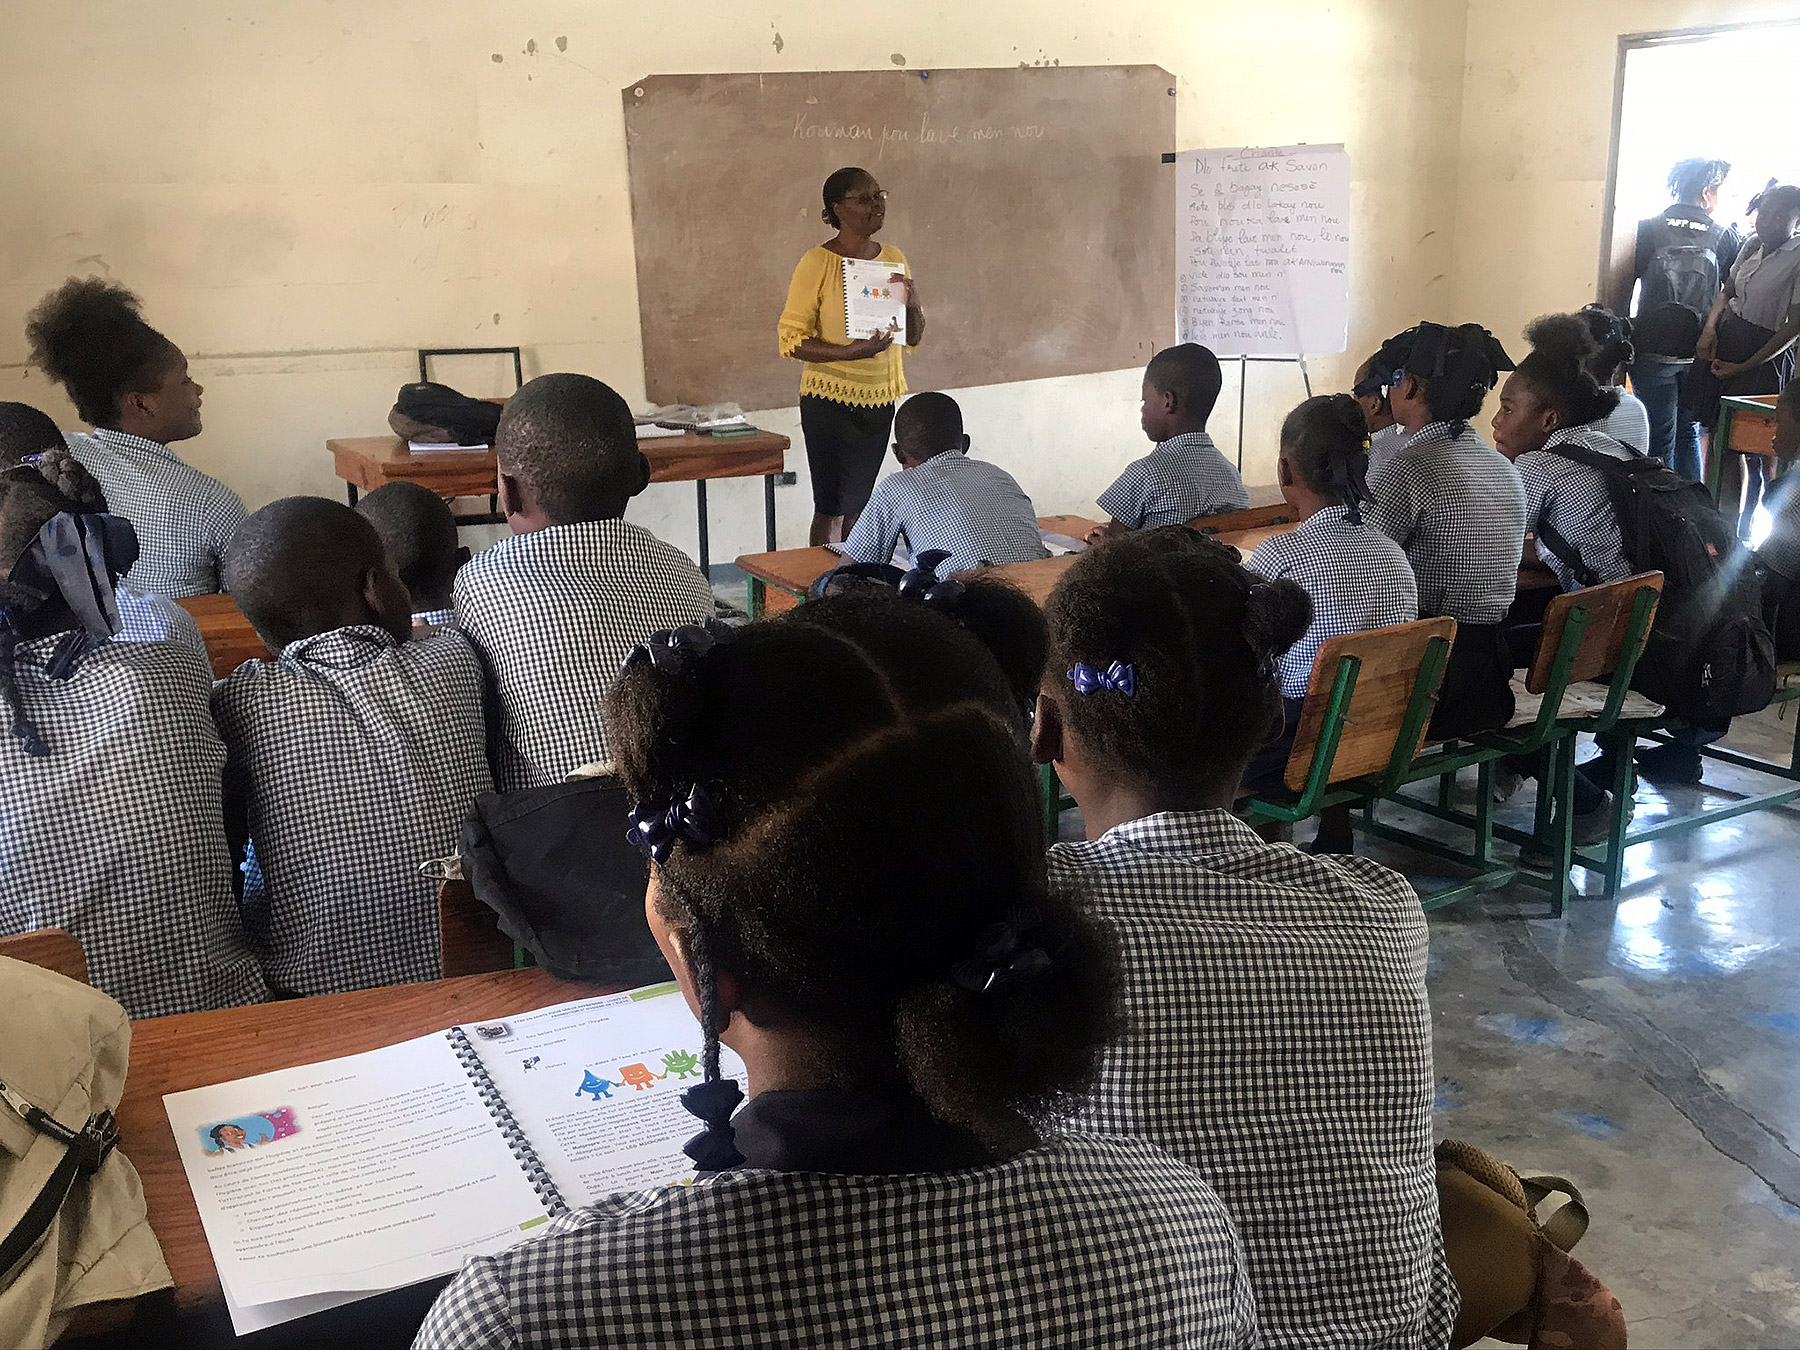 Students in a class at Gressier National School learn about how to prevent the spread of infection